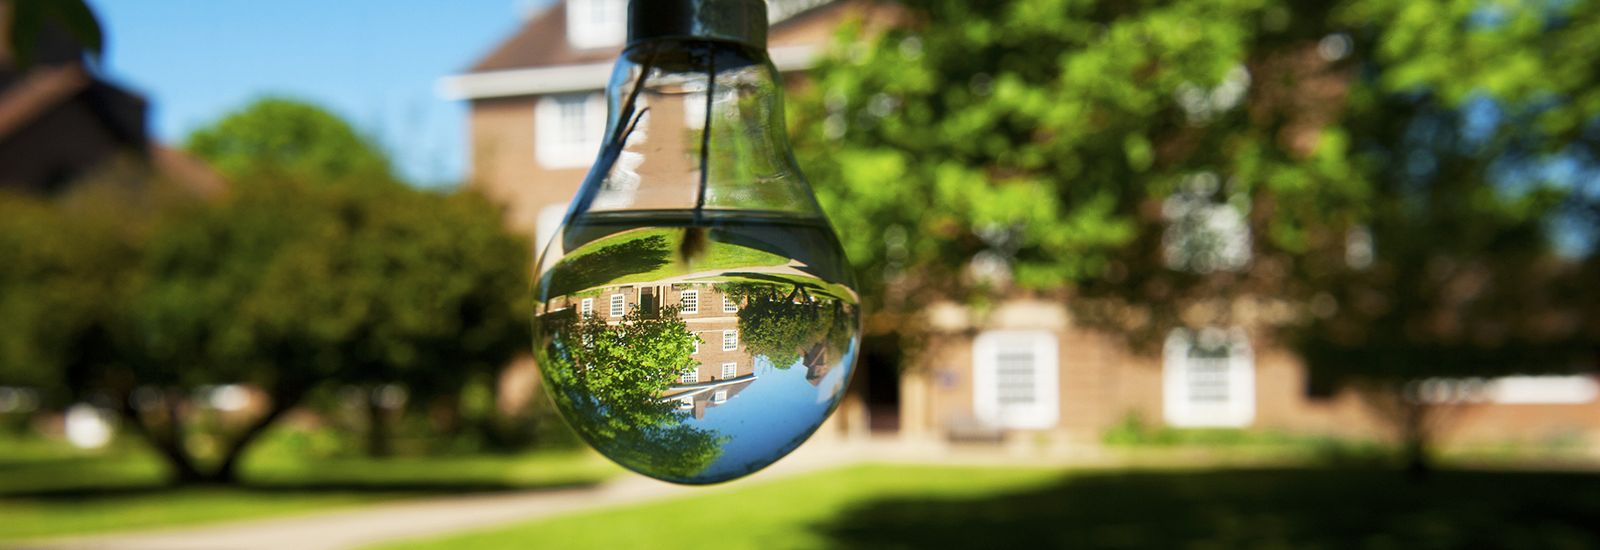 Reflection of a college quad upside-down in a lightbulb